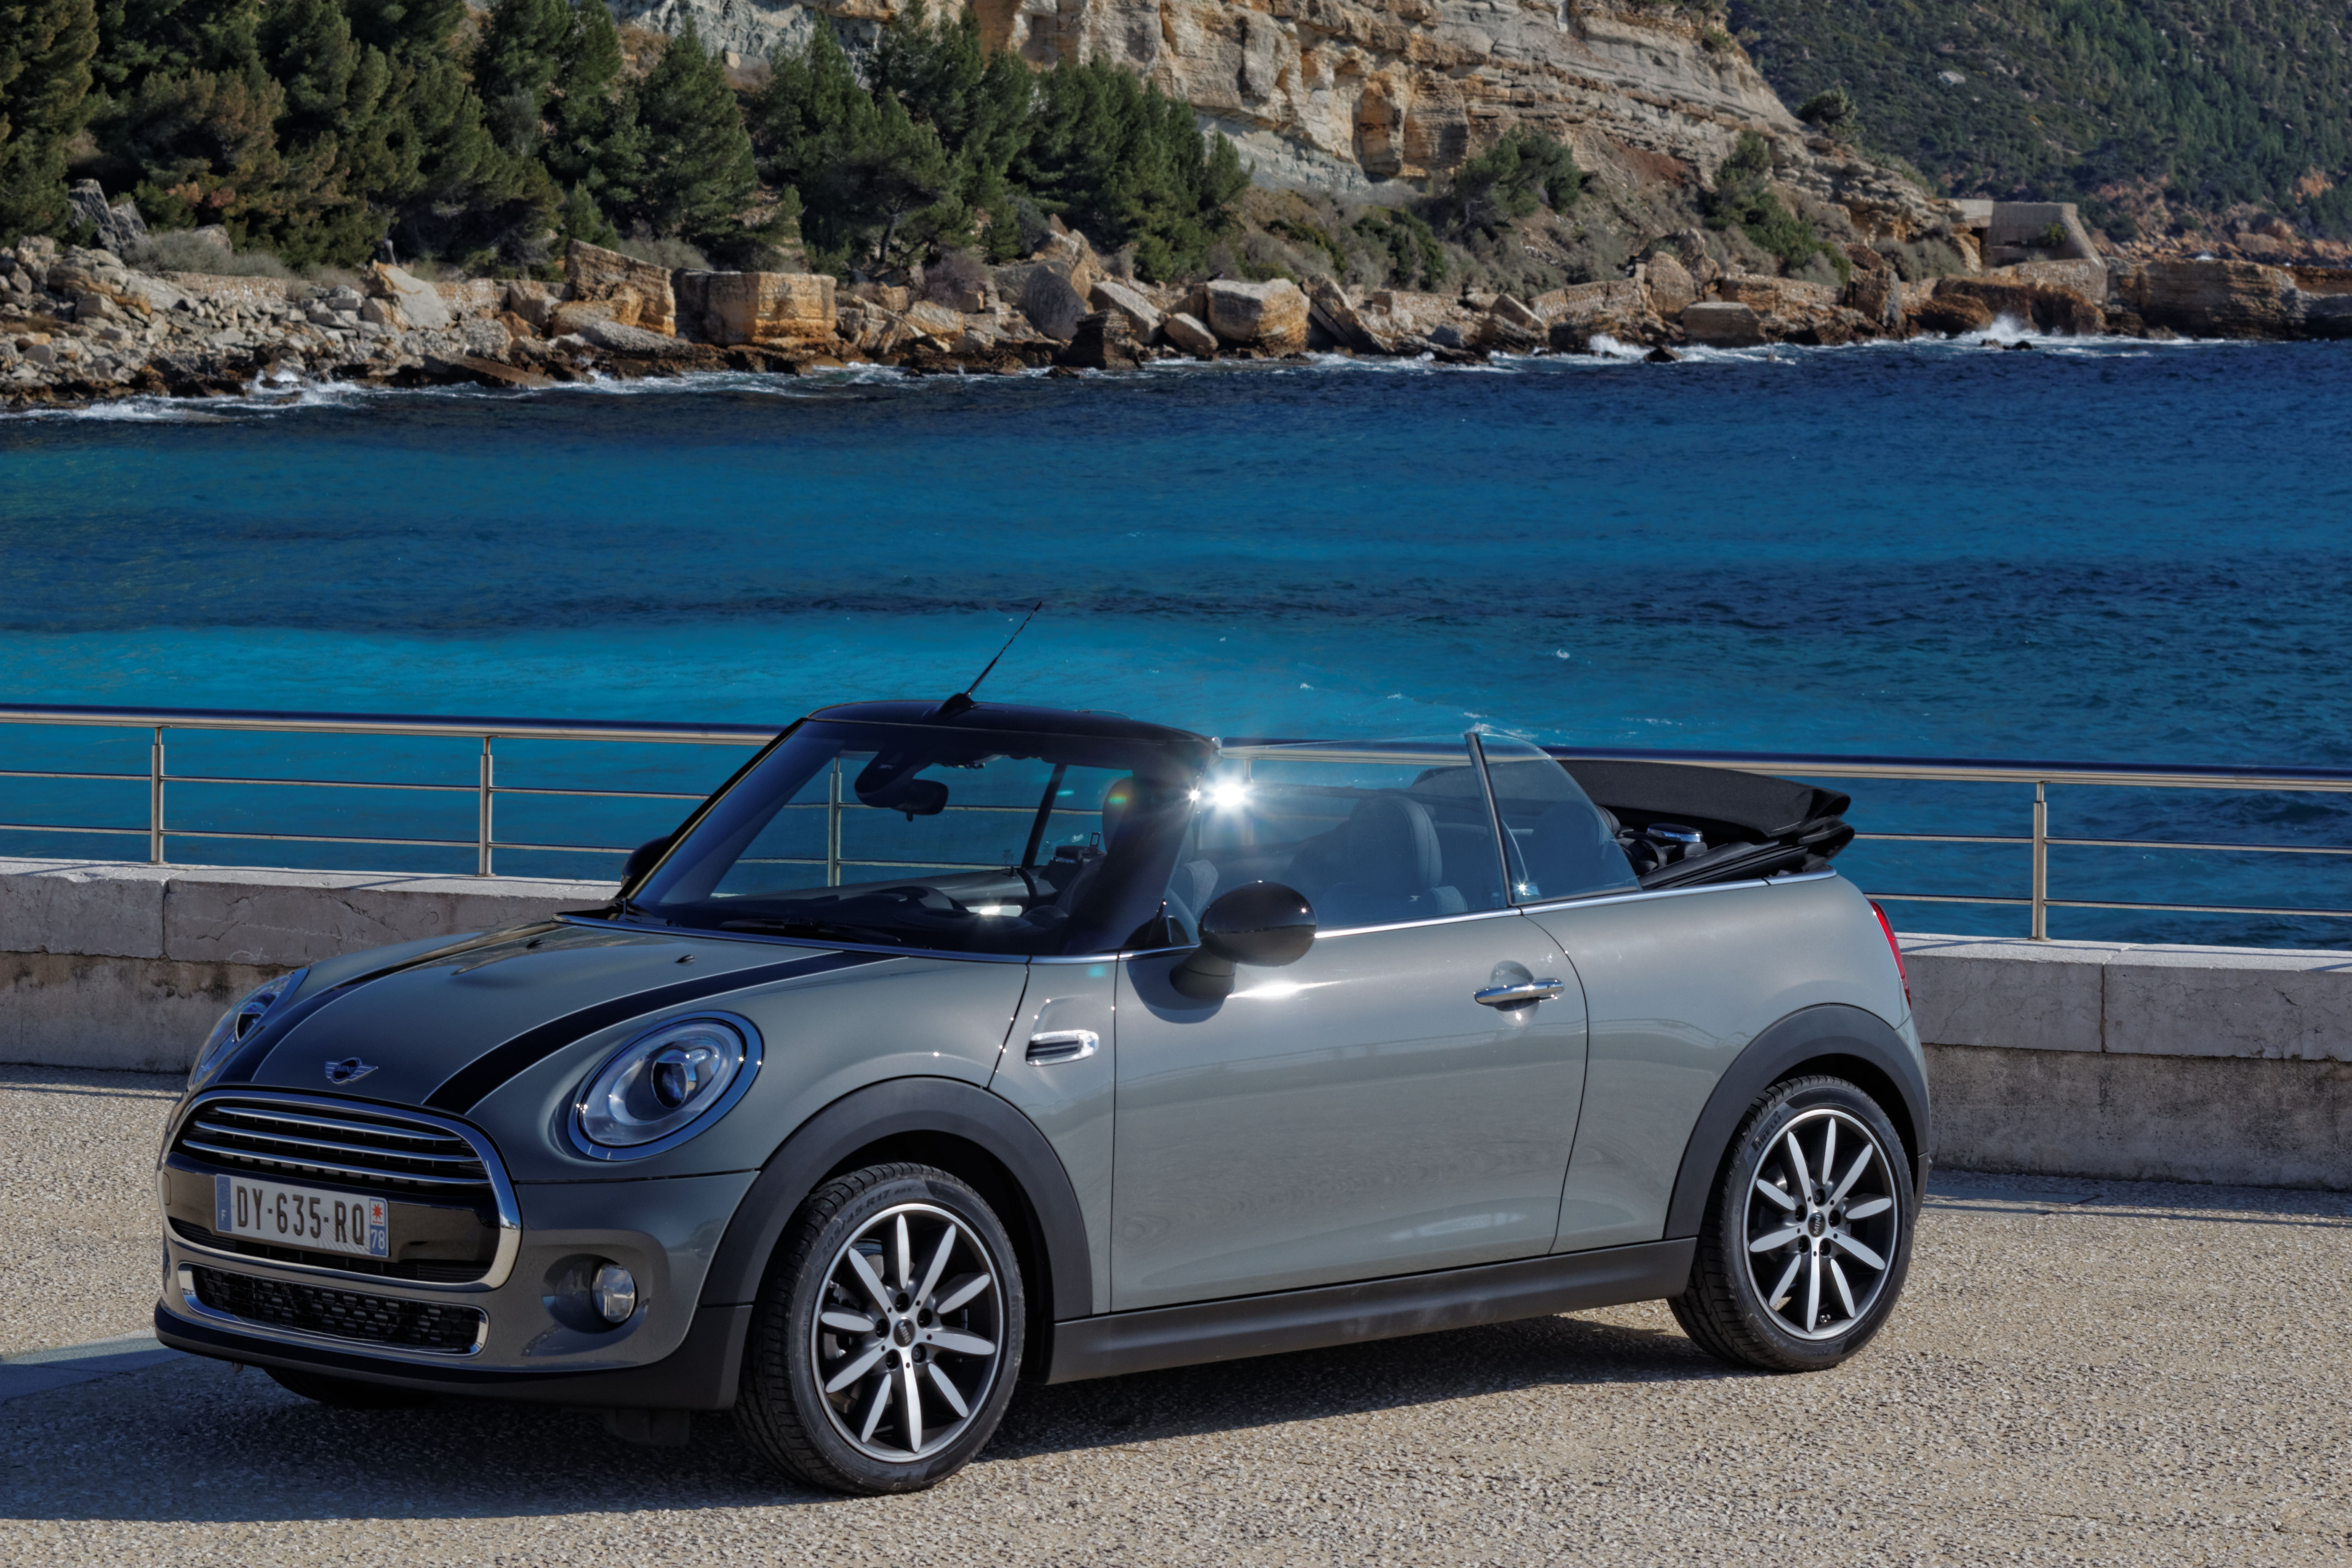 Fond Vert 2 moreover Watch as well Top 10 Voitures Decapotables France likewise Les Meilleurs Cabriolets 40208 besides 4692 Renault Kangoo 15 Dci 110 Energy Zen. on mini cabriolet